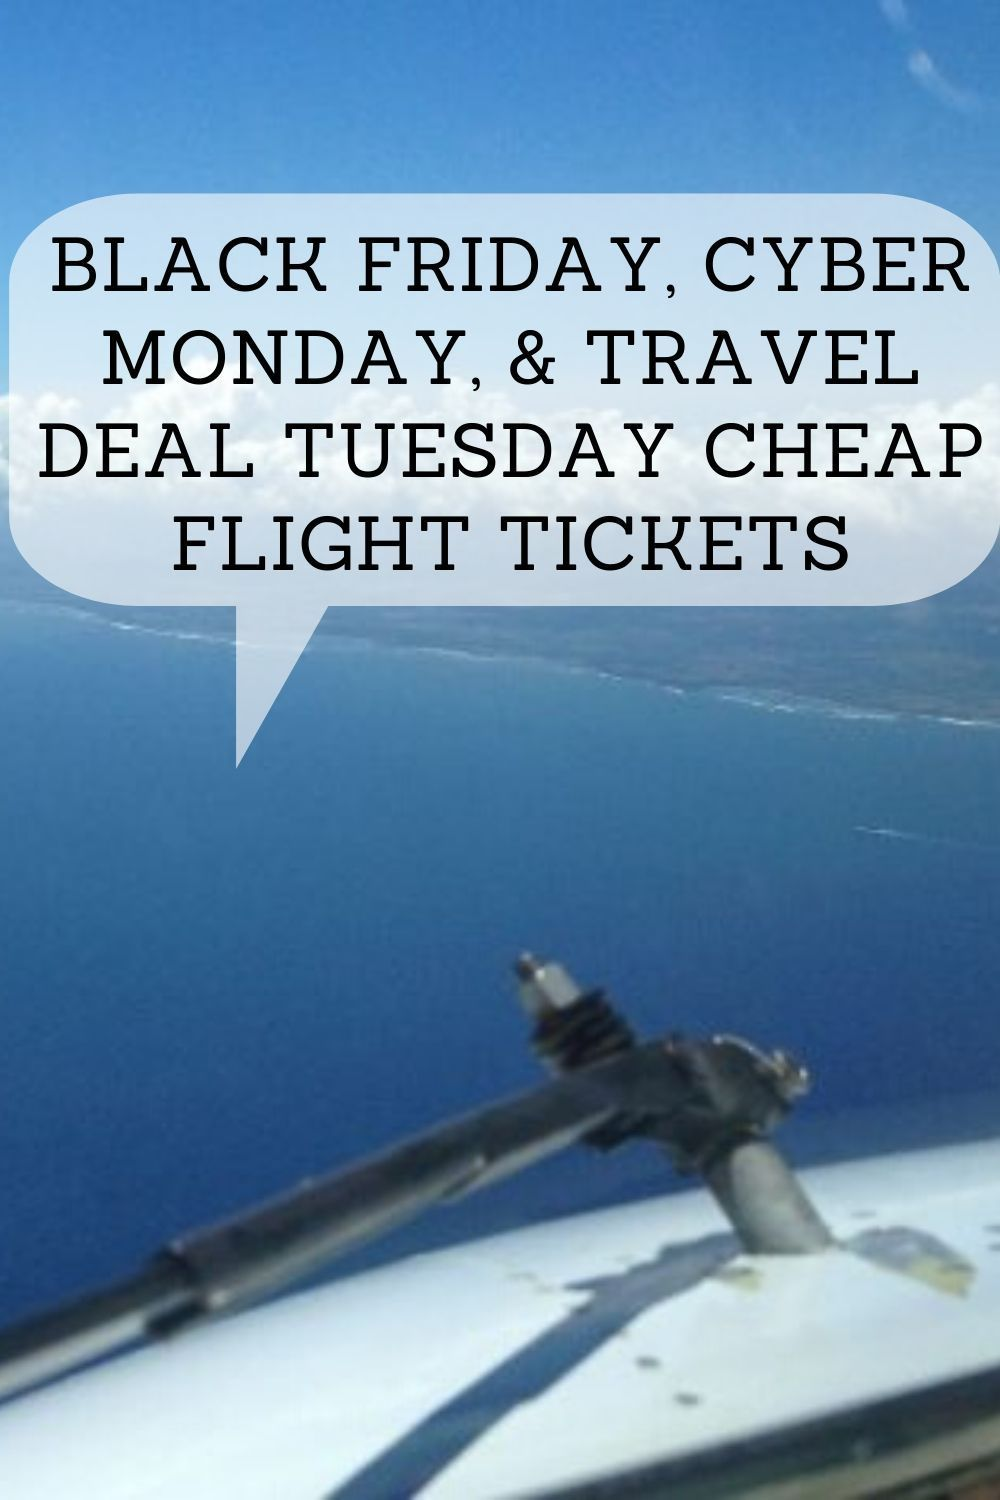 Black Friday Cyber Monday Travel Deal Tuesday Cheap Flight Tickets